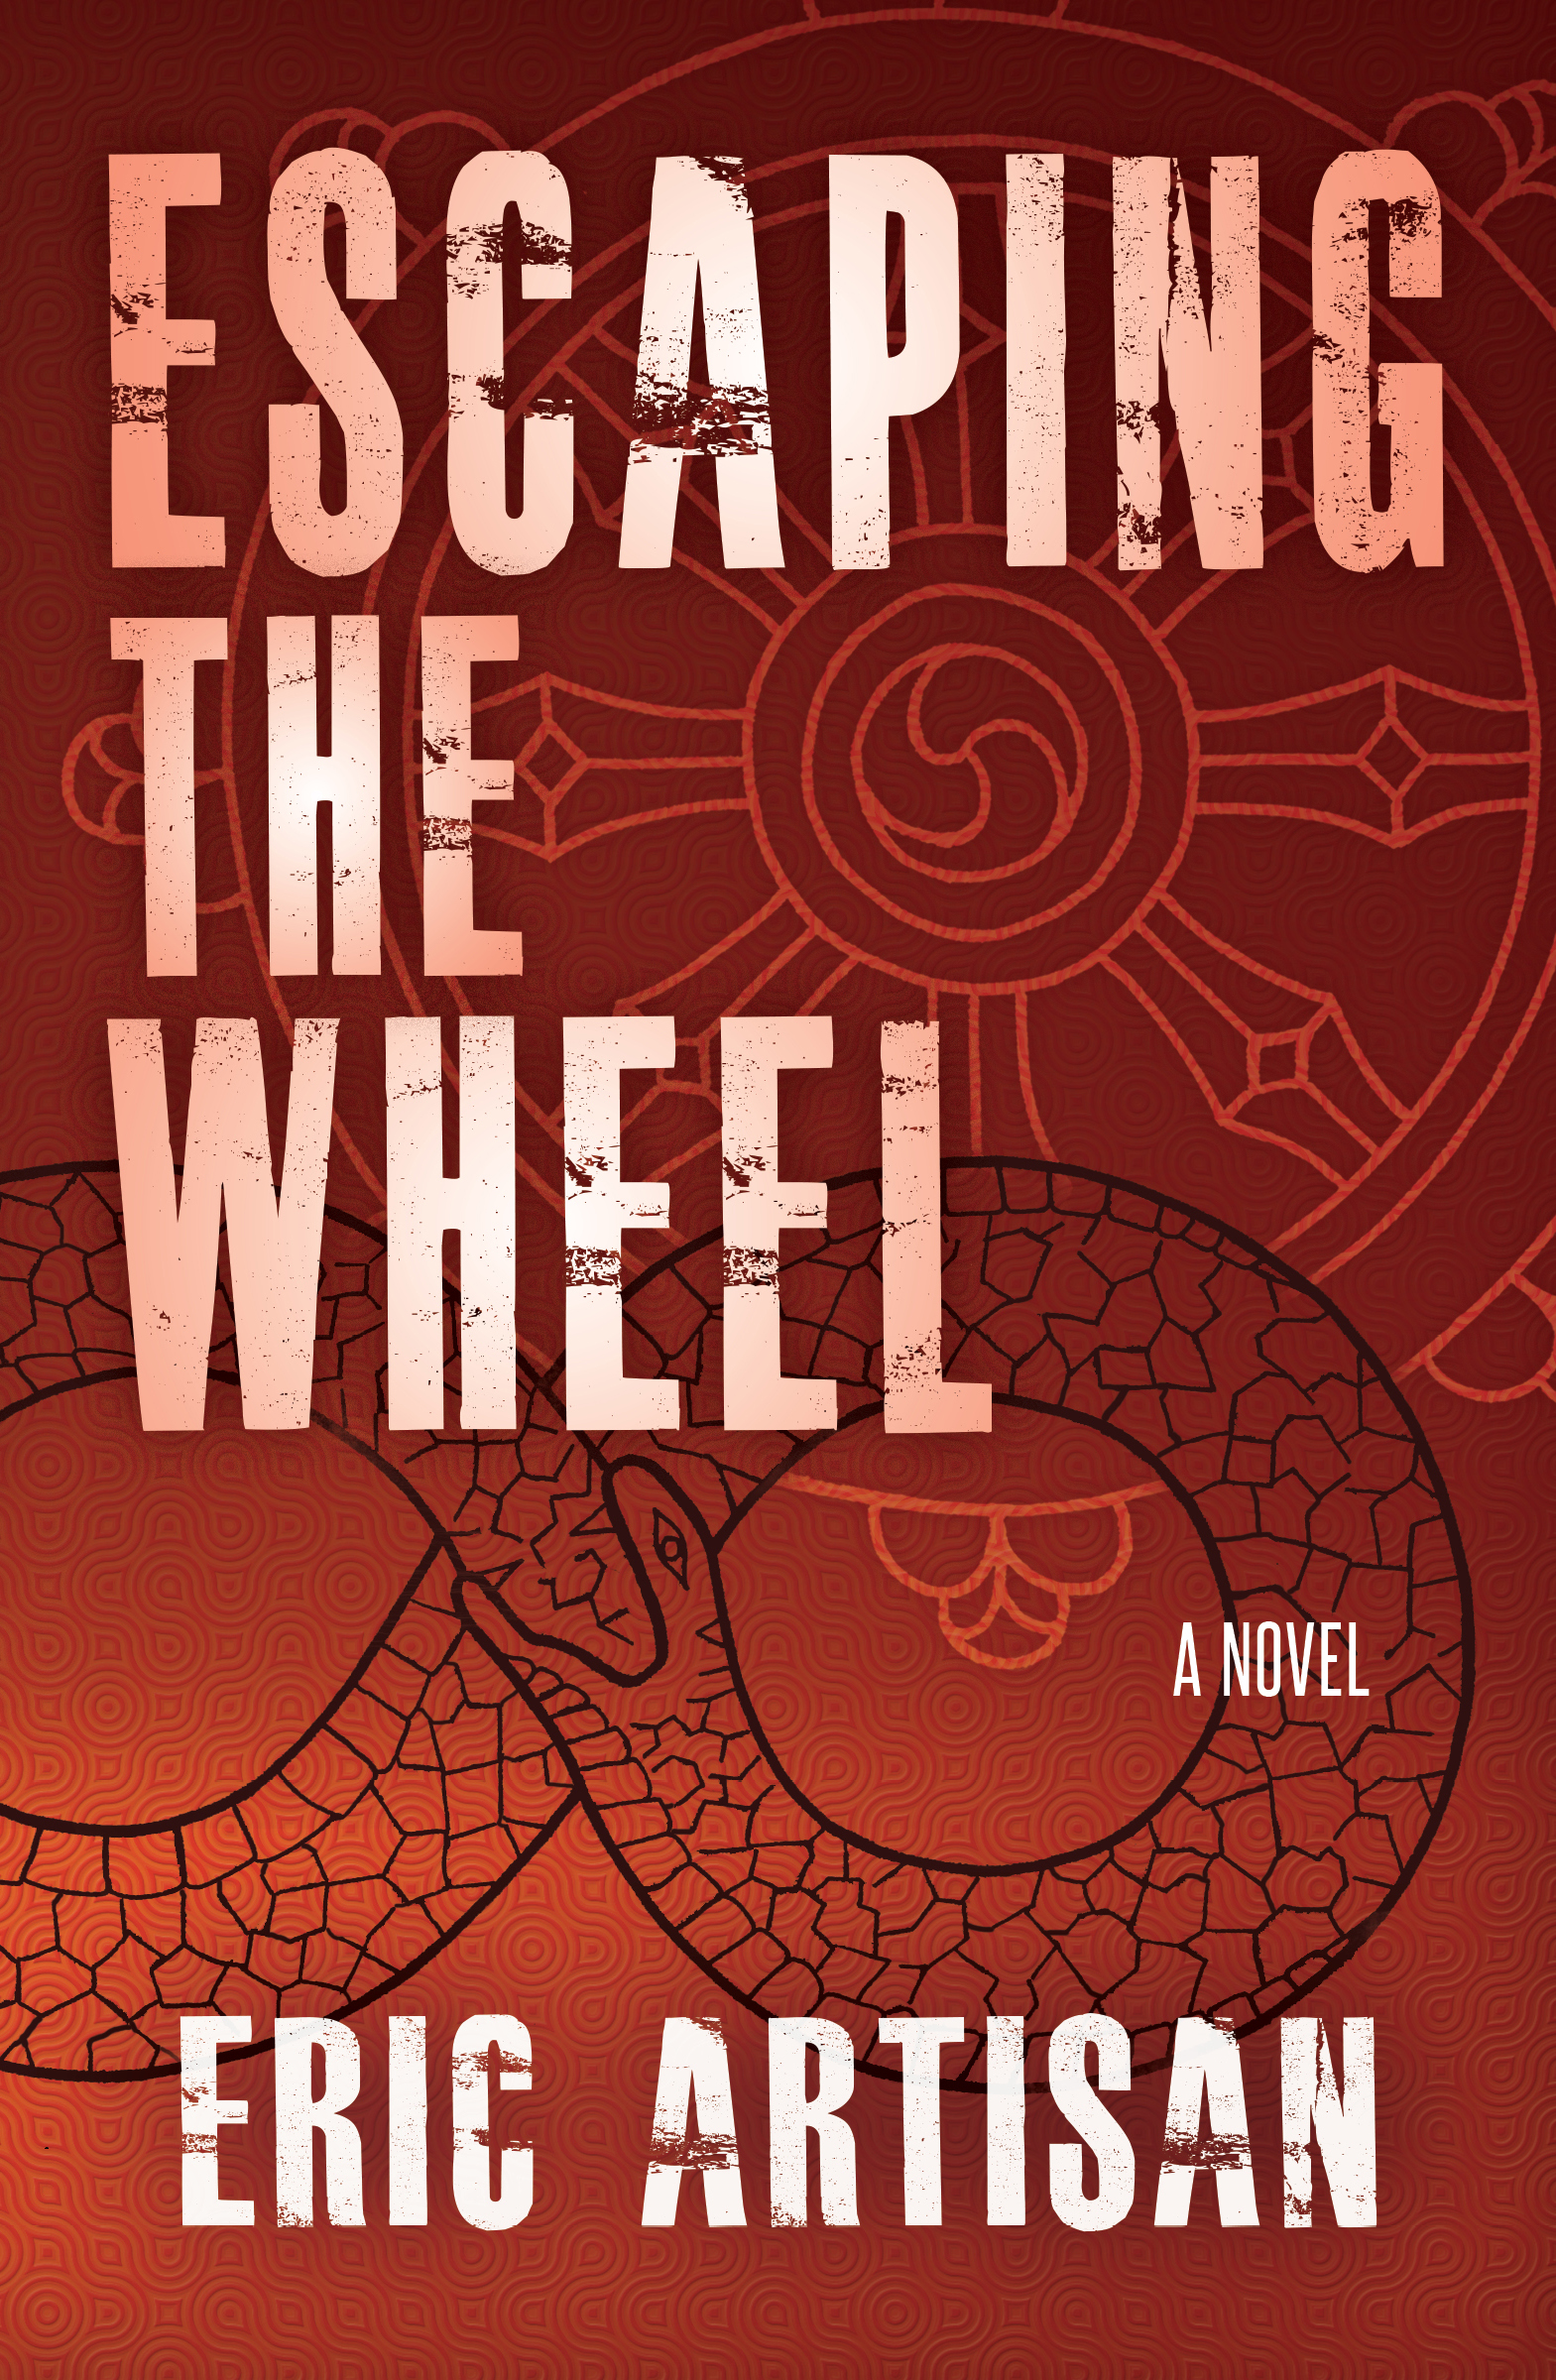 Book cover for Escaping the Wheel by Eric Artisan